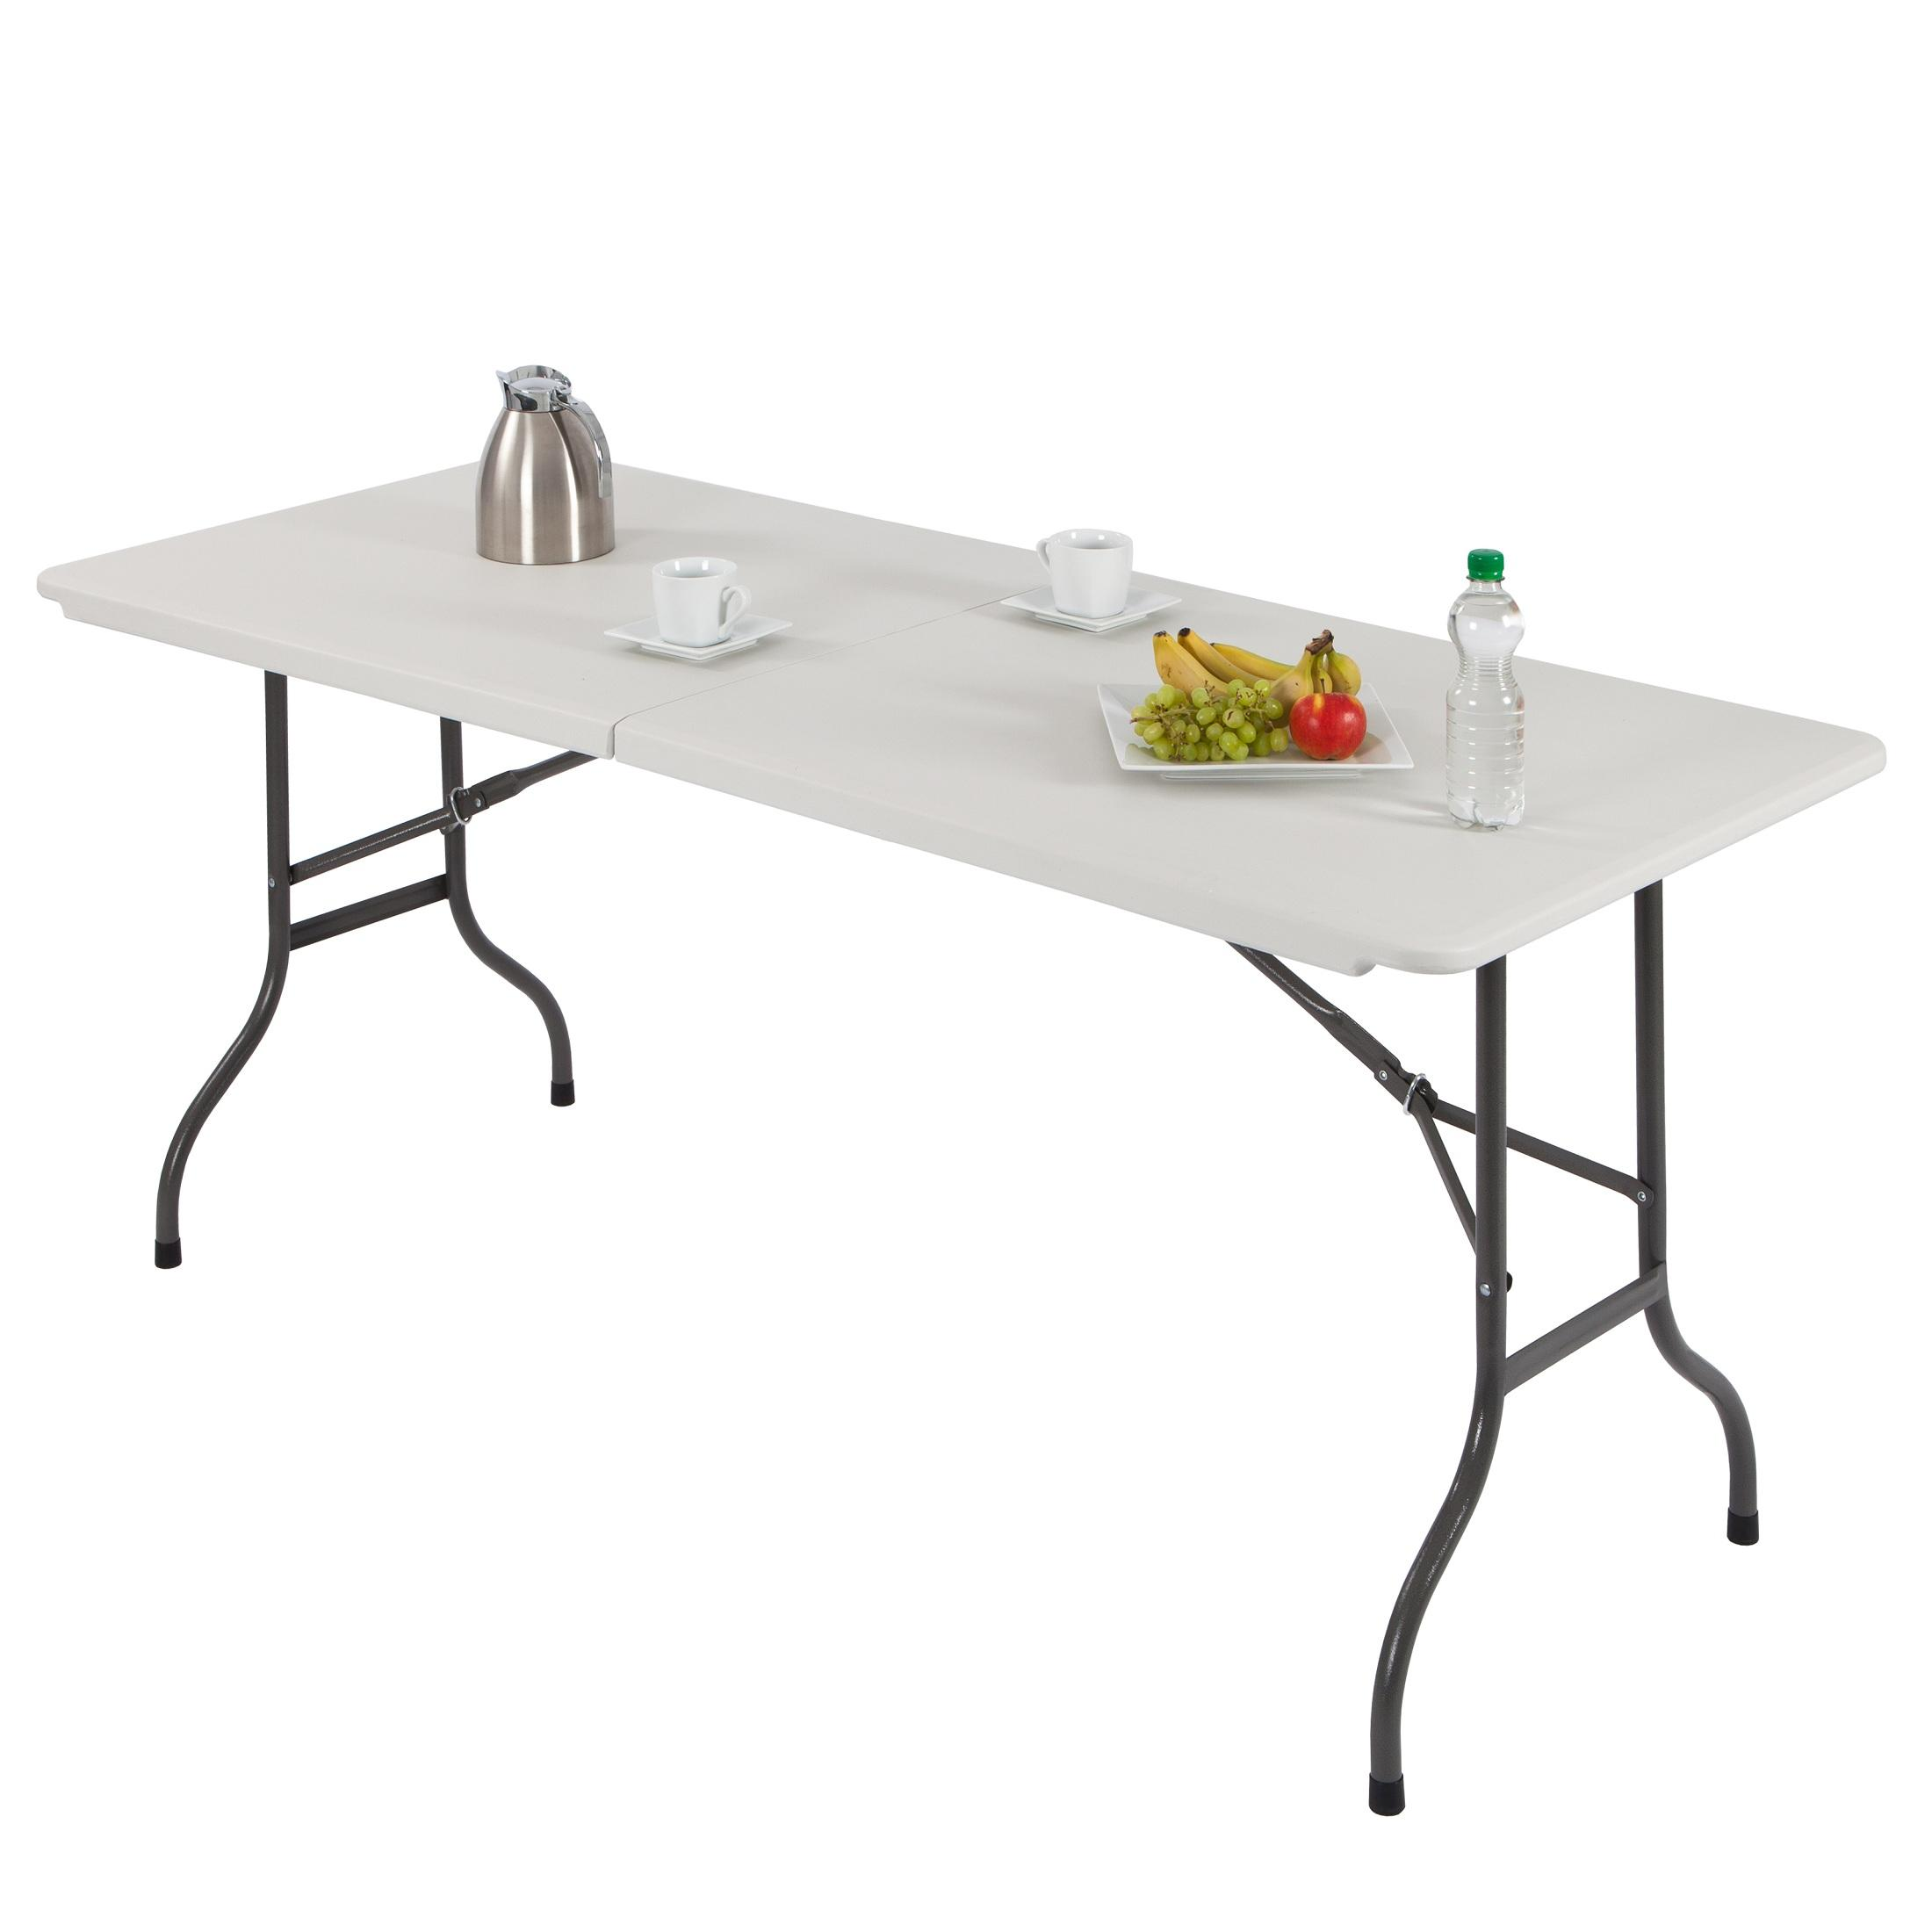 Ultranatura table pliante multiusage en plastique gamme for Table pliante de cuisine pas cher